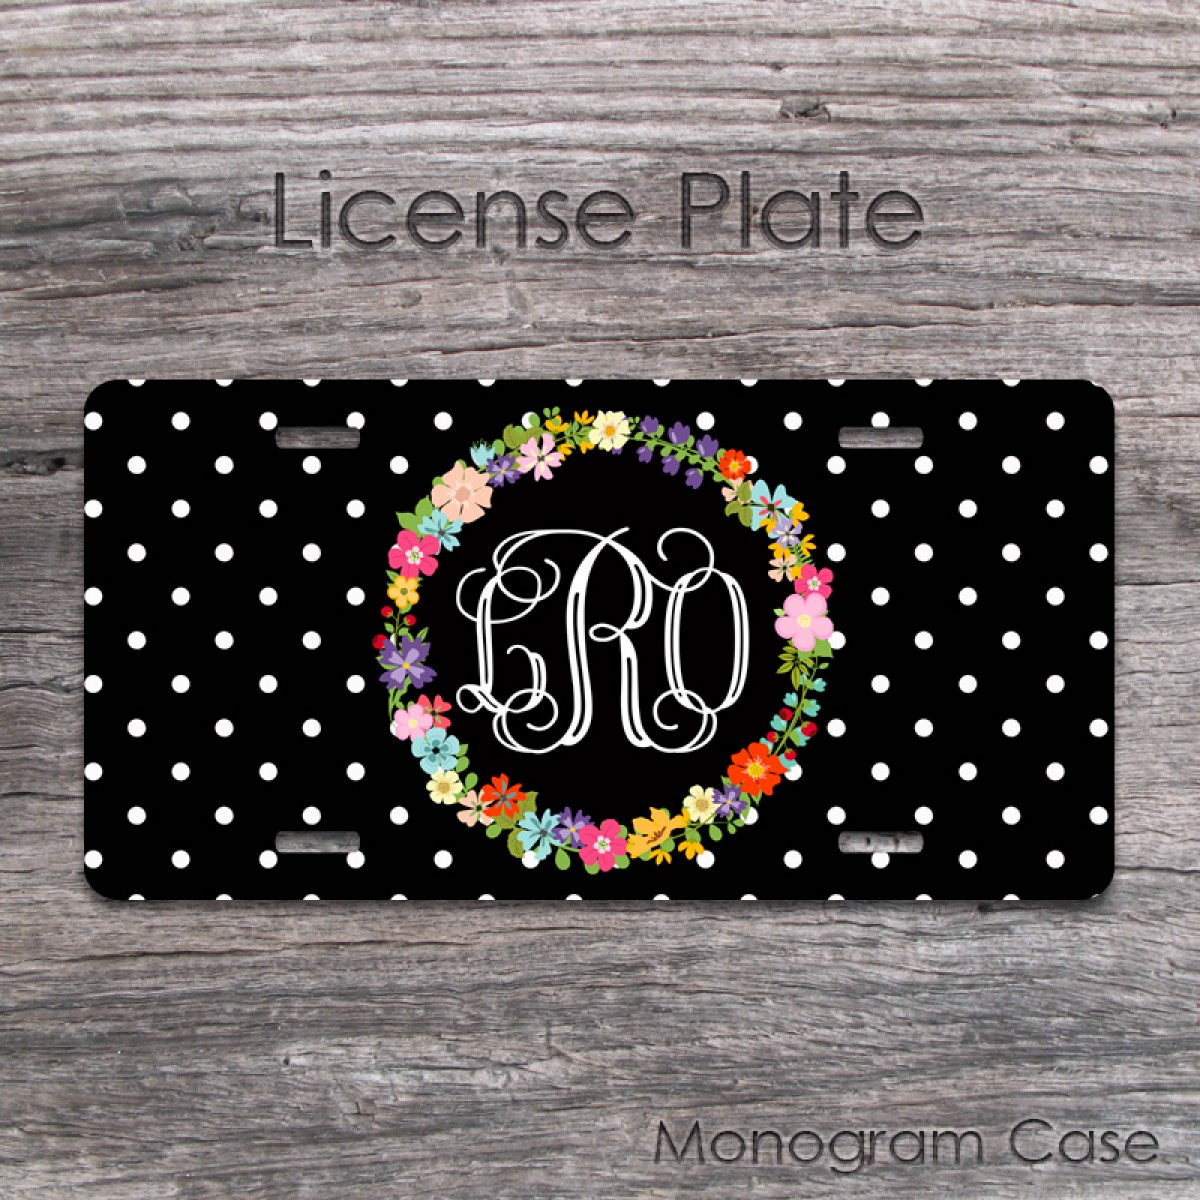 a803d4ae2 Floral wreath and monogram front car tag design| MonogramCase